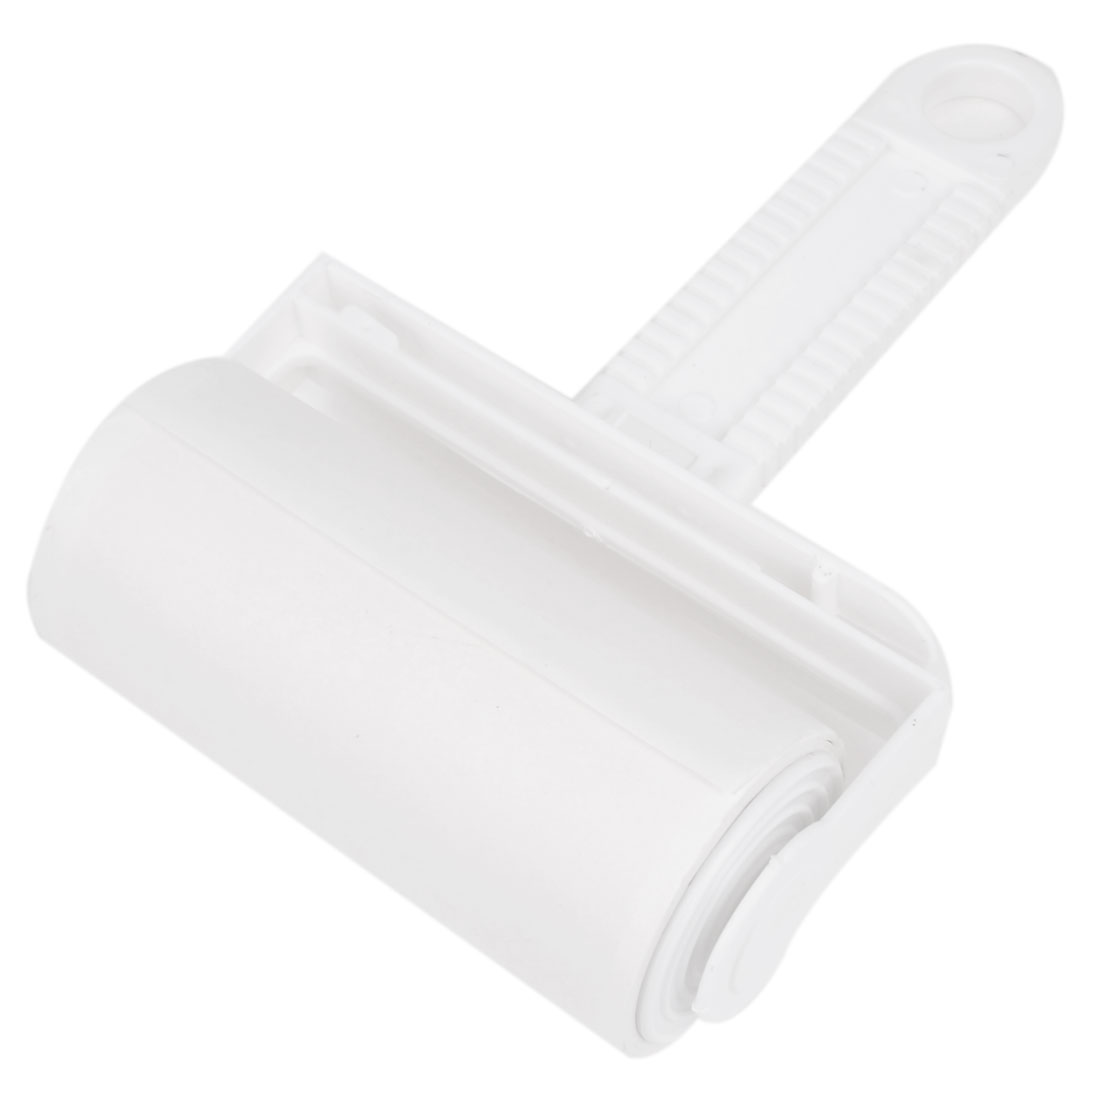 White Clear Plastic Manual Dust Removing Tool Anti-static Sticky Roller